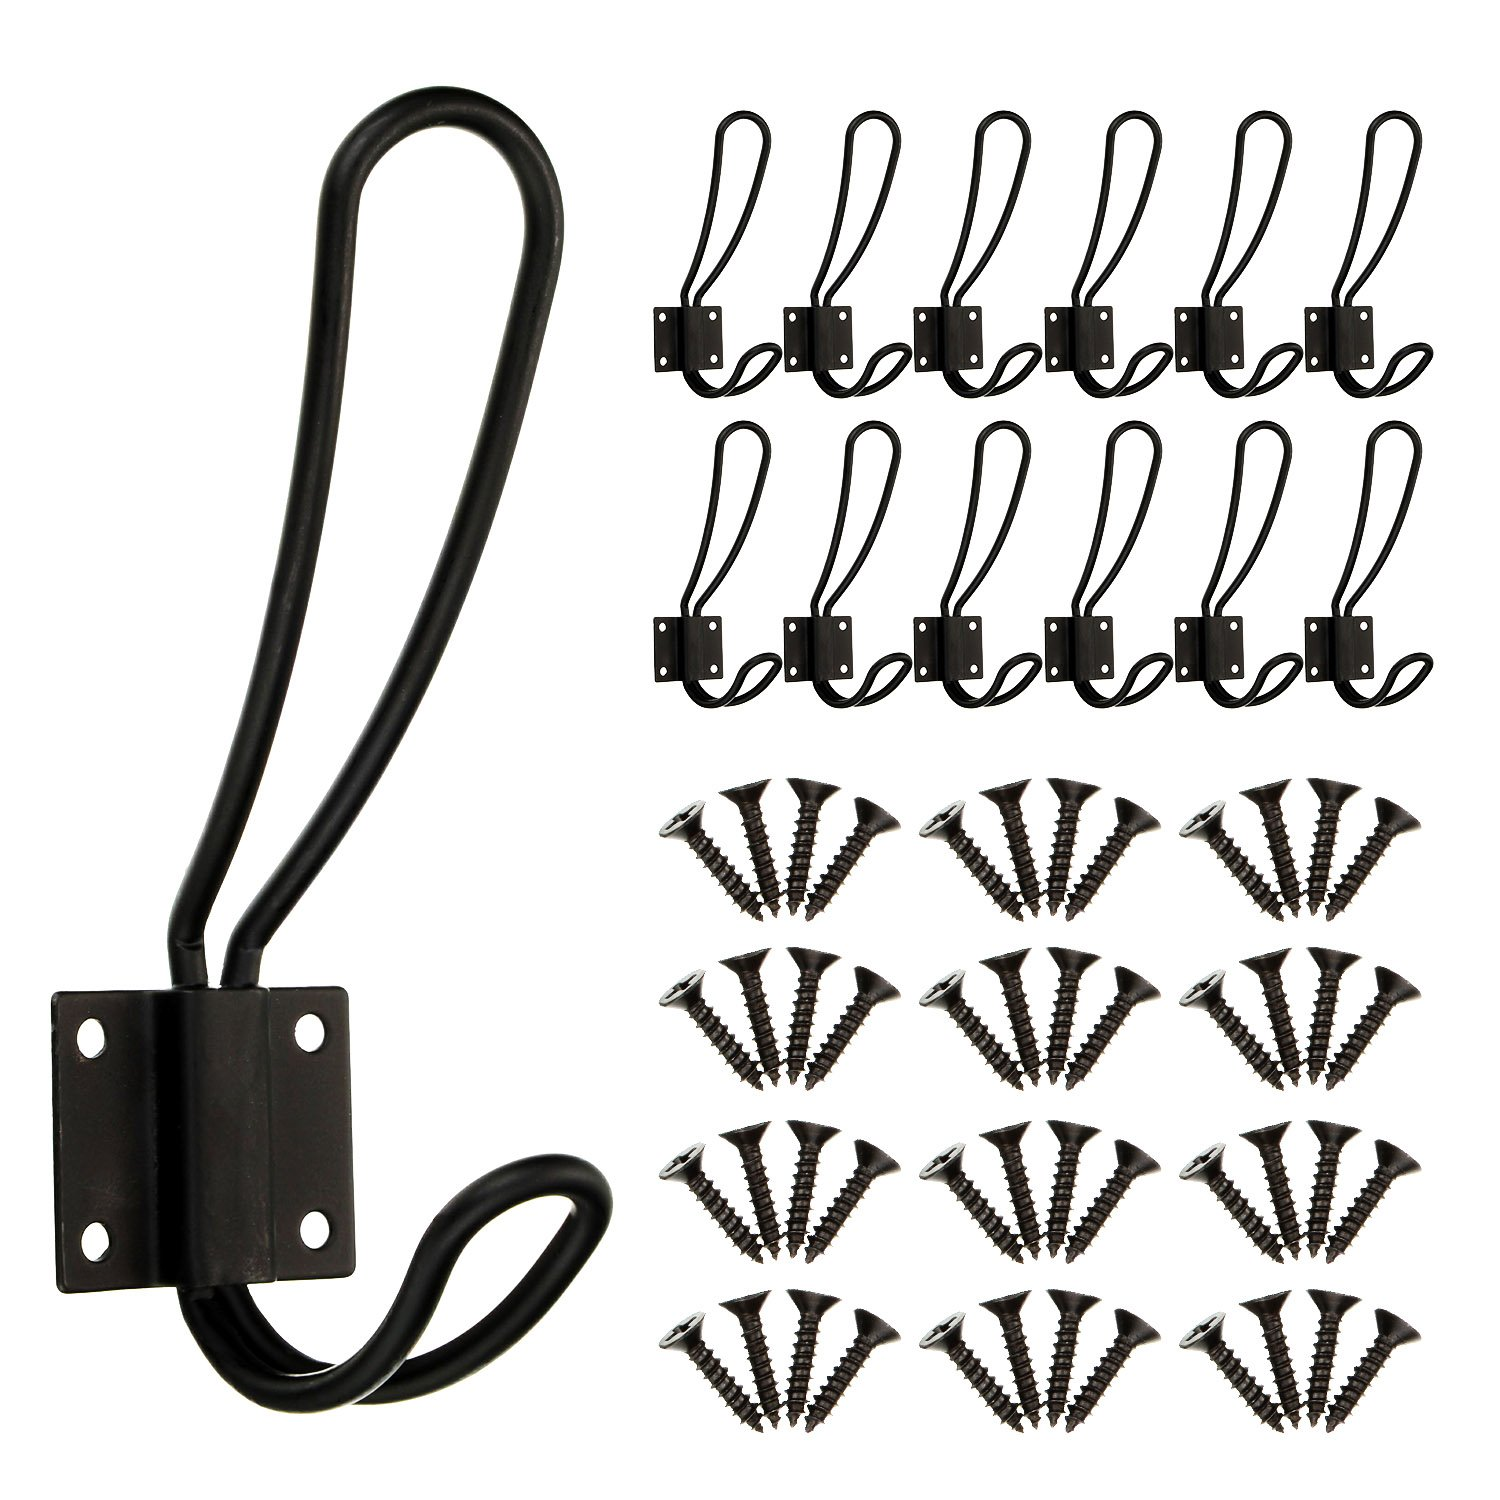 BBTO 12 Pieces Black Big Wall Mounted Rustic Hook Robe Hooks Double Coat Hangers and 48 Pieces Screws (Black)